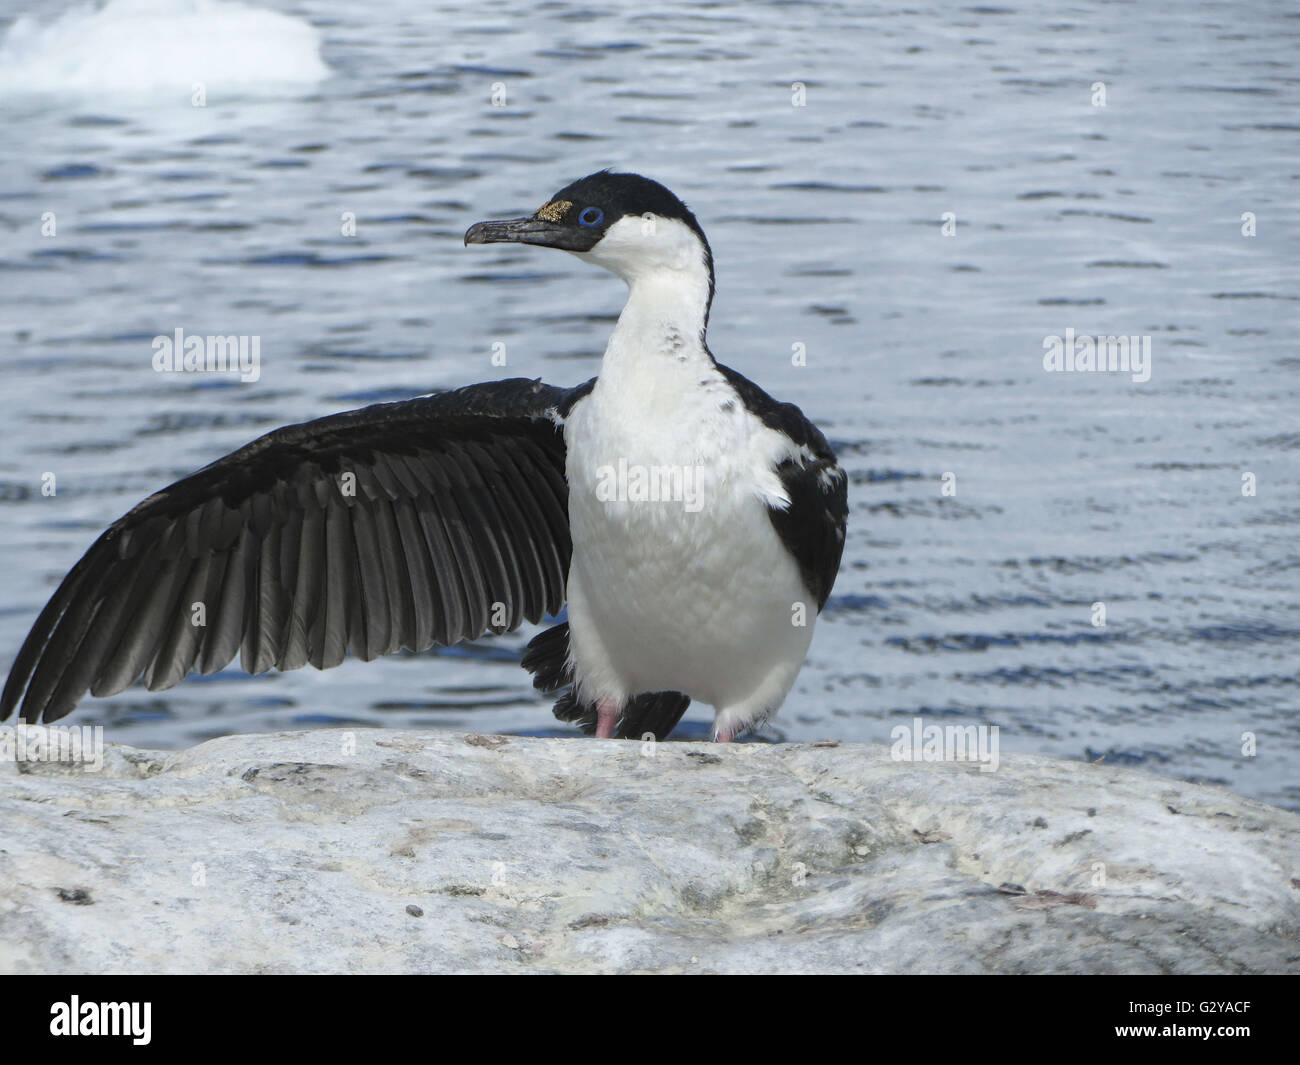 Antarctic Blue Eyed Shag (Phalacrocorax Bransfieldensis) spreading one wing at a 'Voilà' gesture in - Stock Image